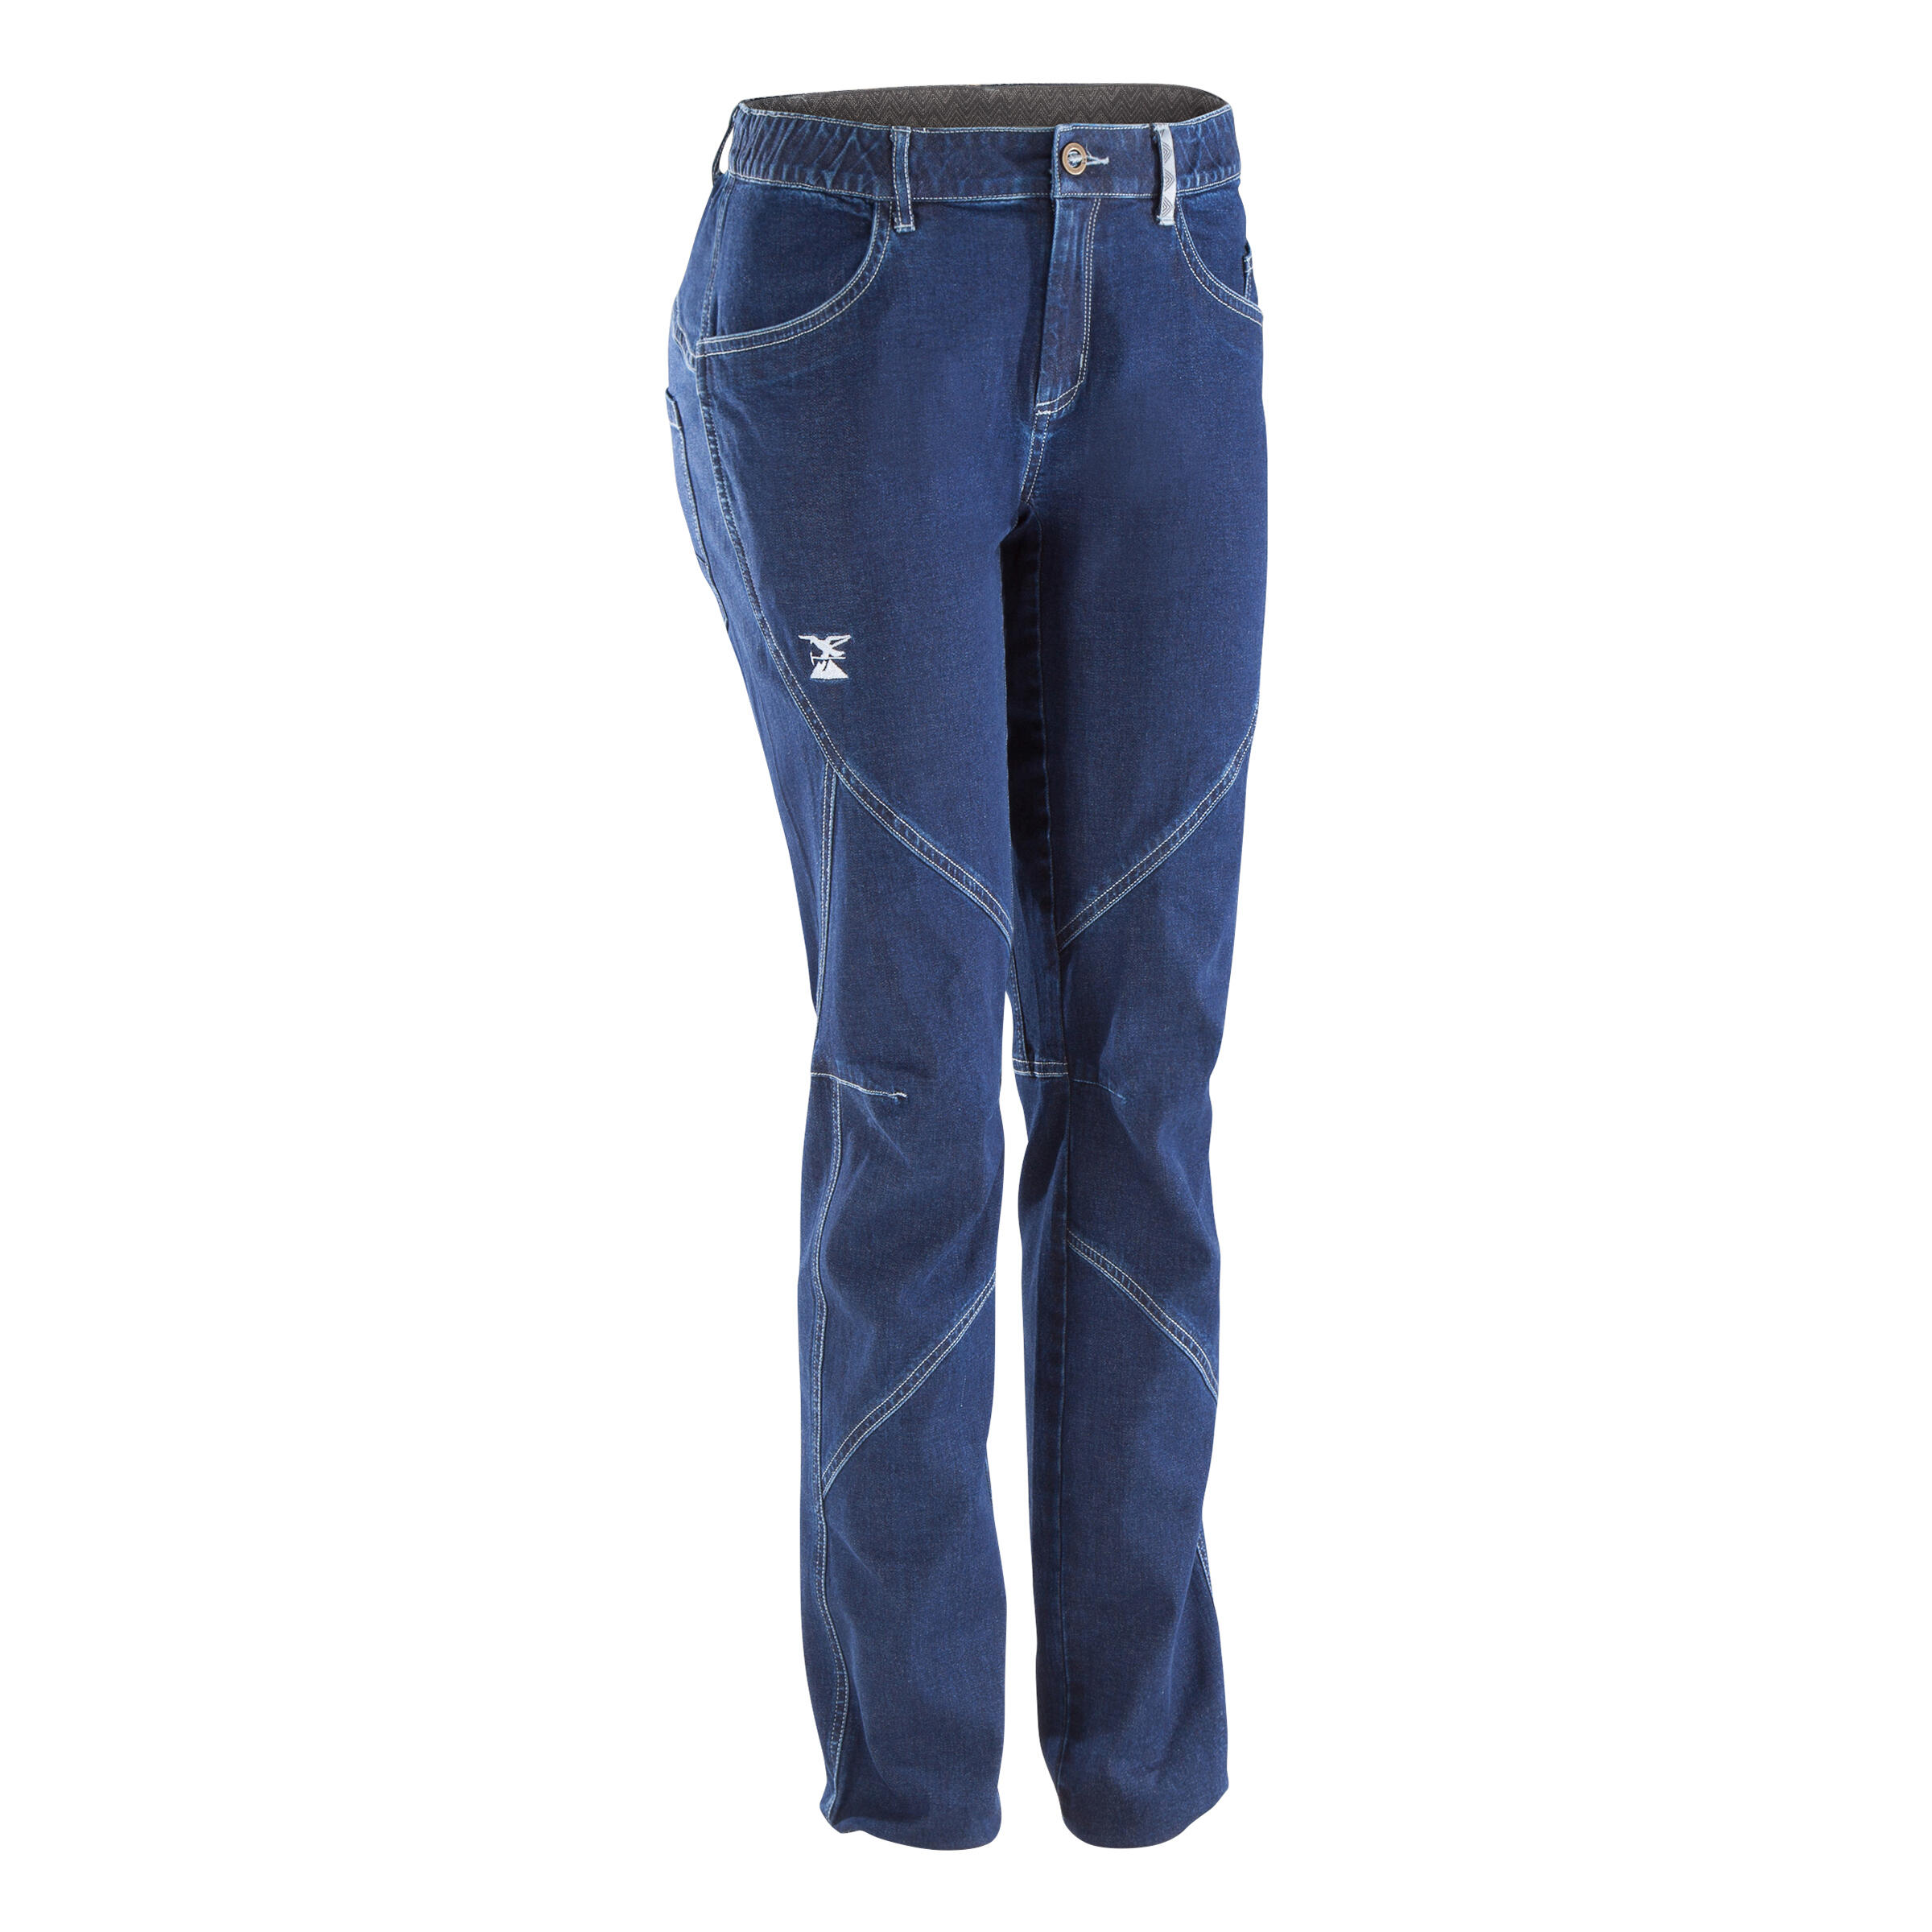 Pantalon JEAN STRETCH Damă